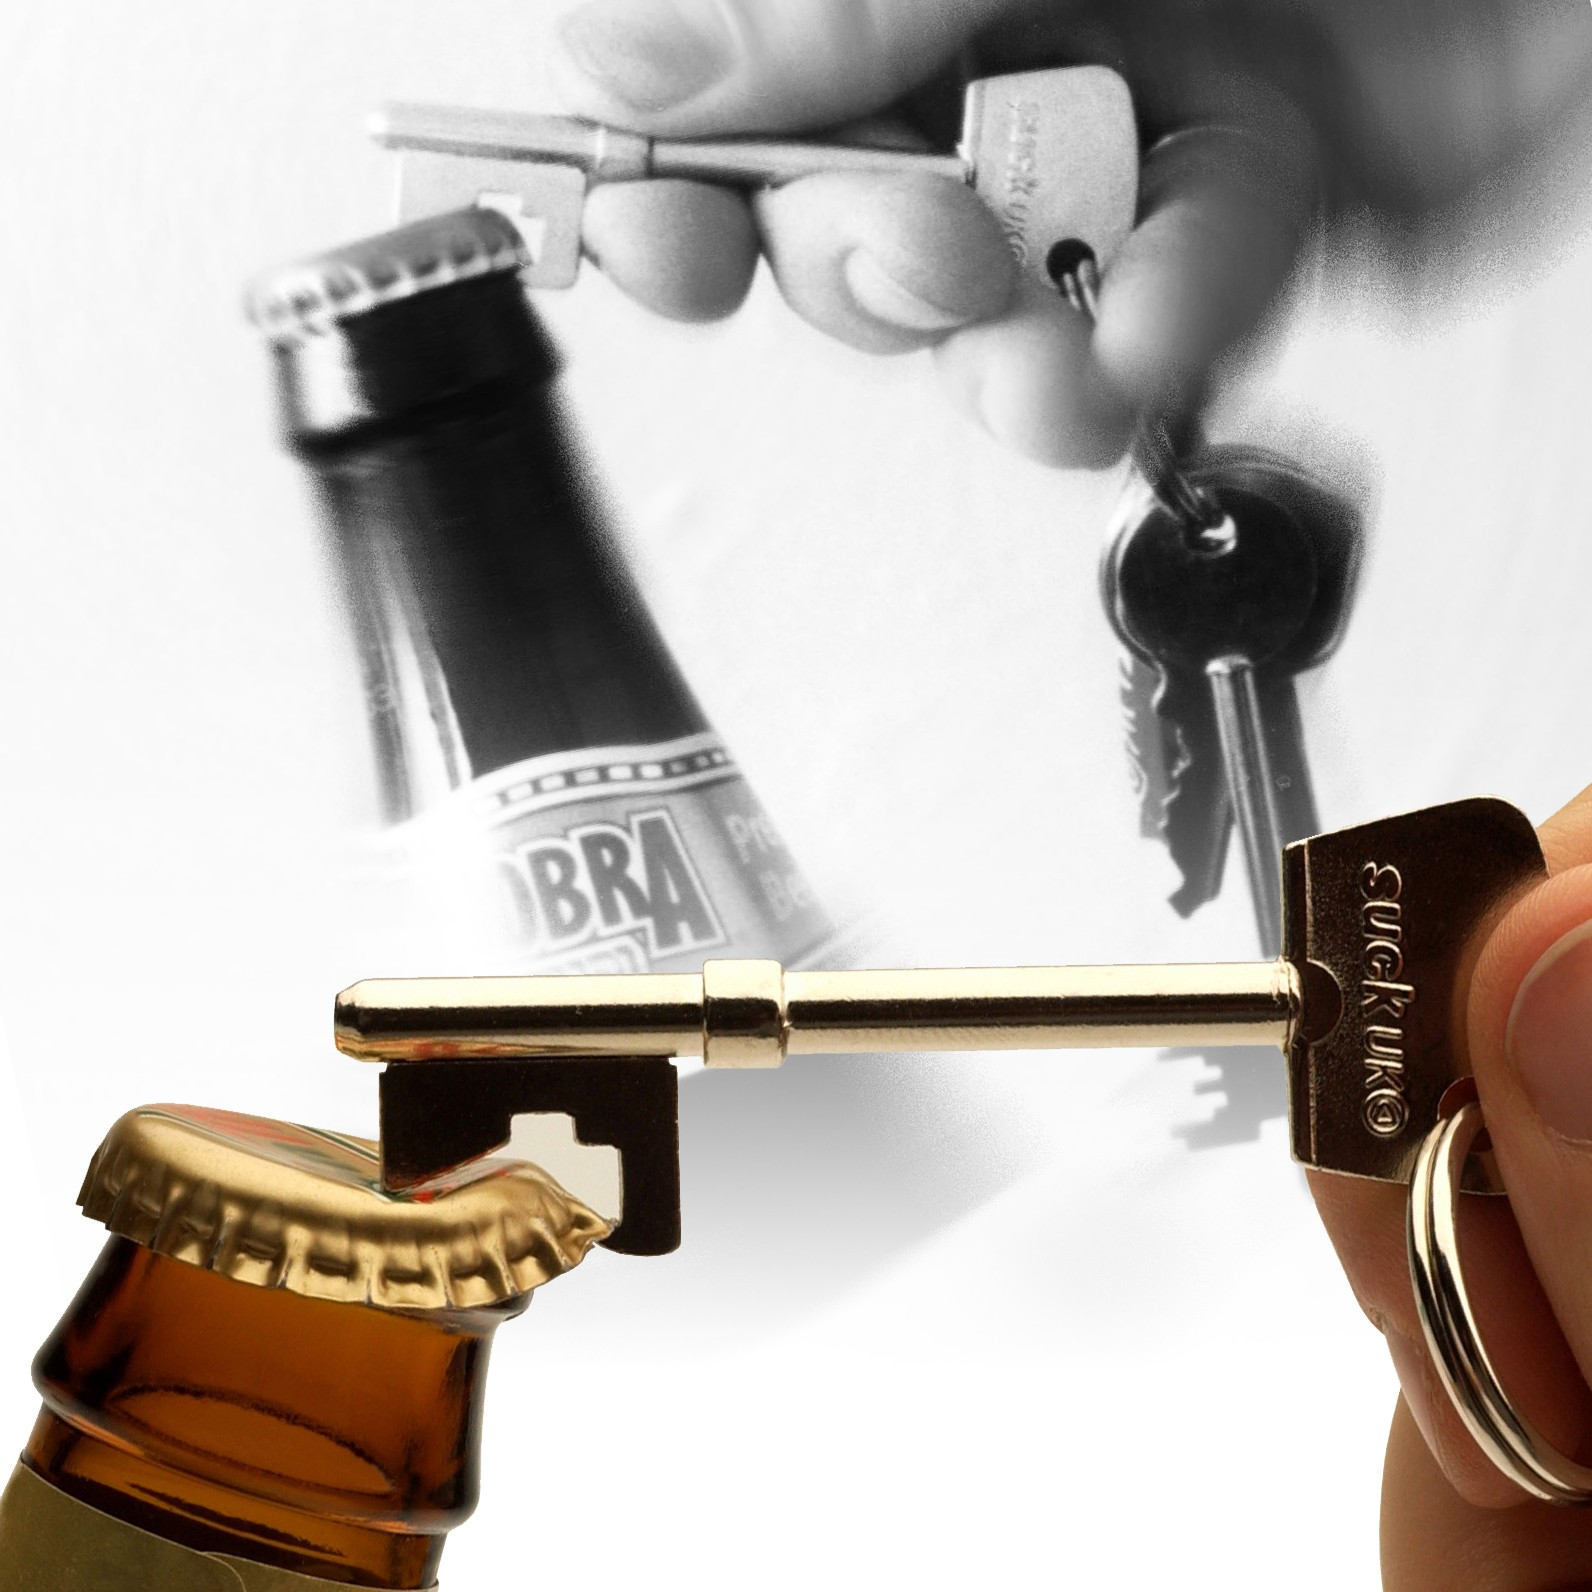 E_3012201664358_key-bottle-opener.jpg